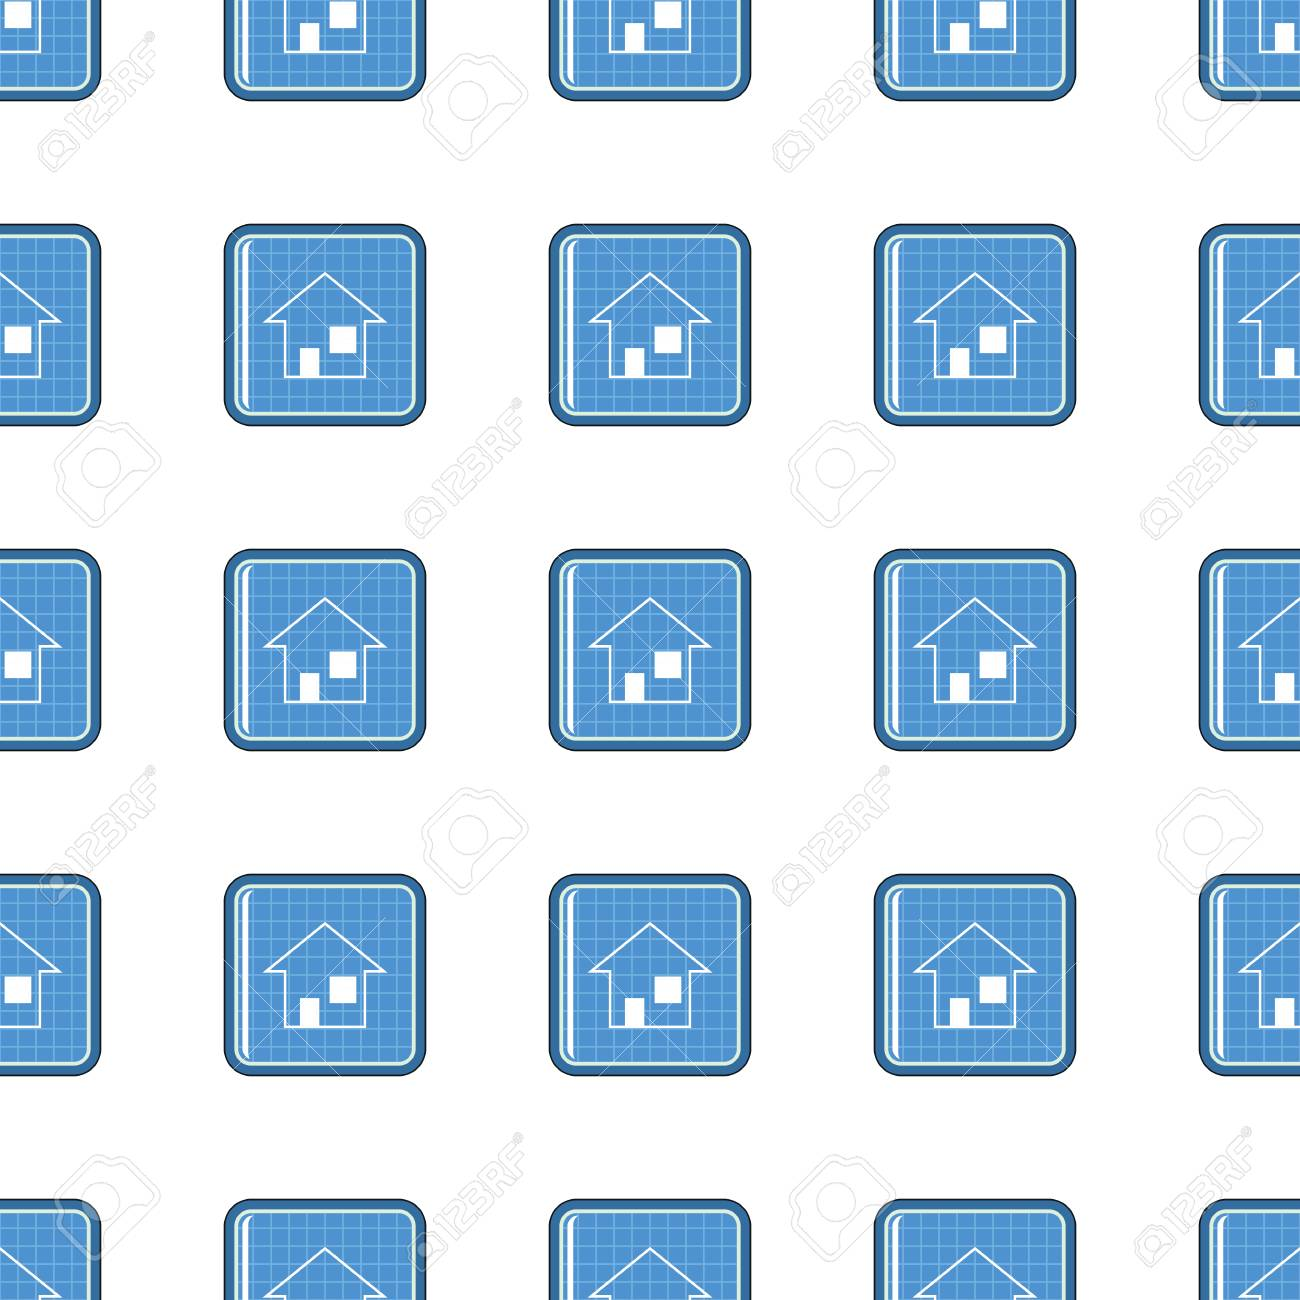 Blueprint seamless pattern in cartoon style isolated on white blueprint seamless pattern in cartoon style isolated on white background vector illustration for web foto de malvernweather Gallery